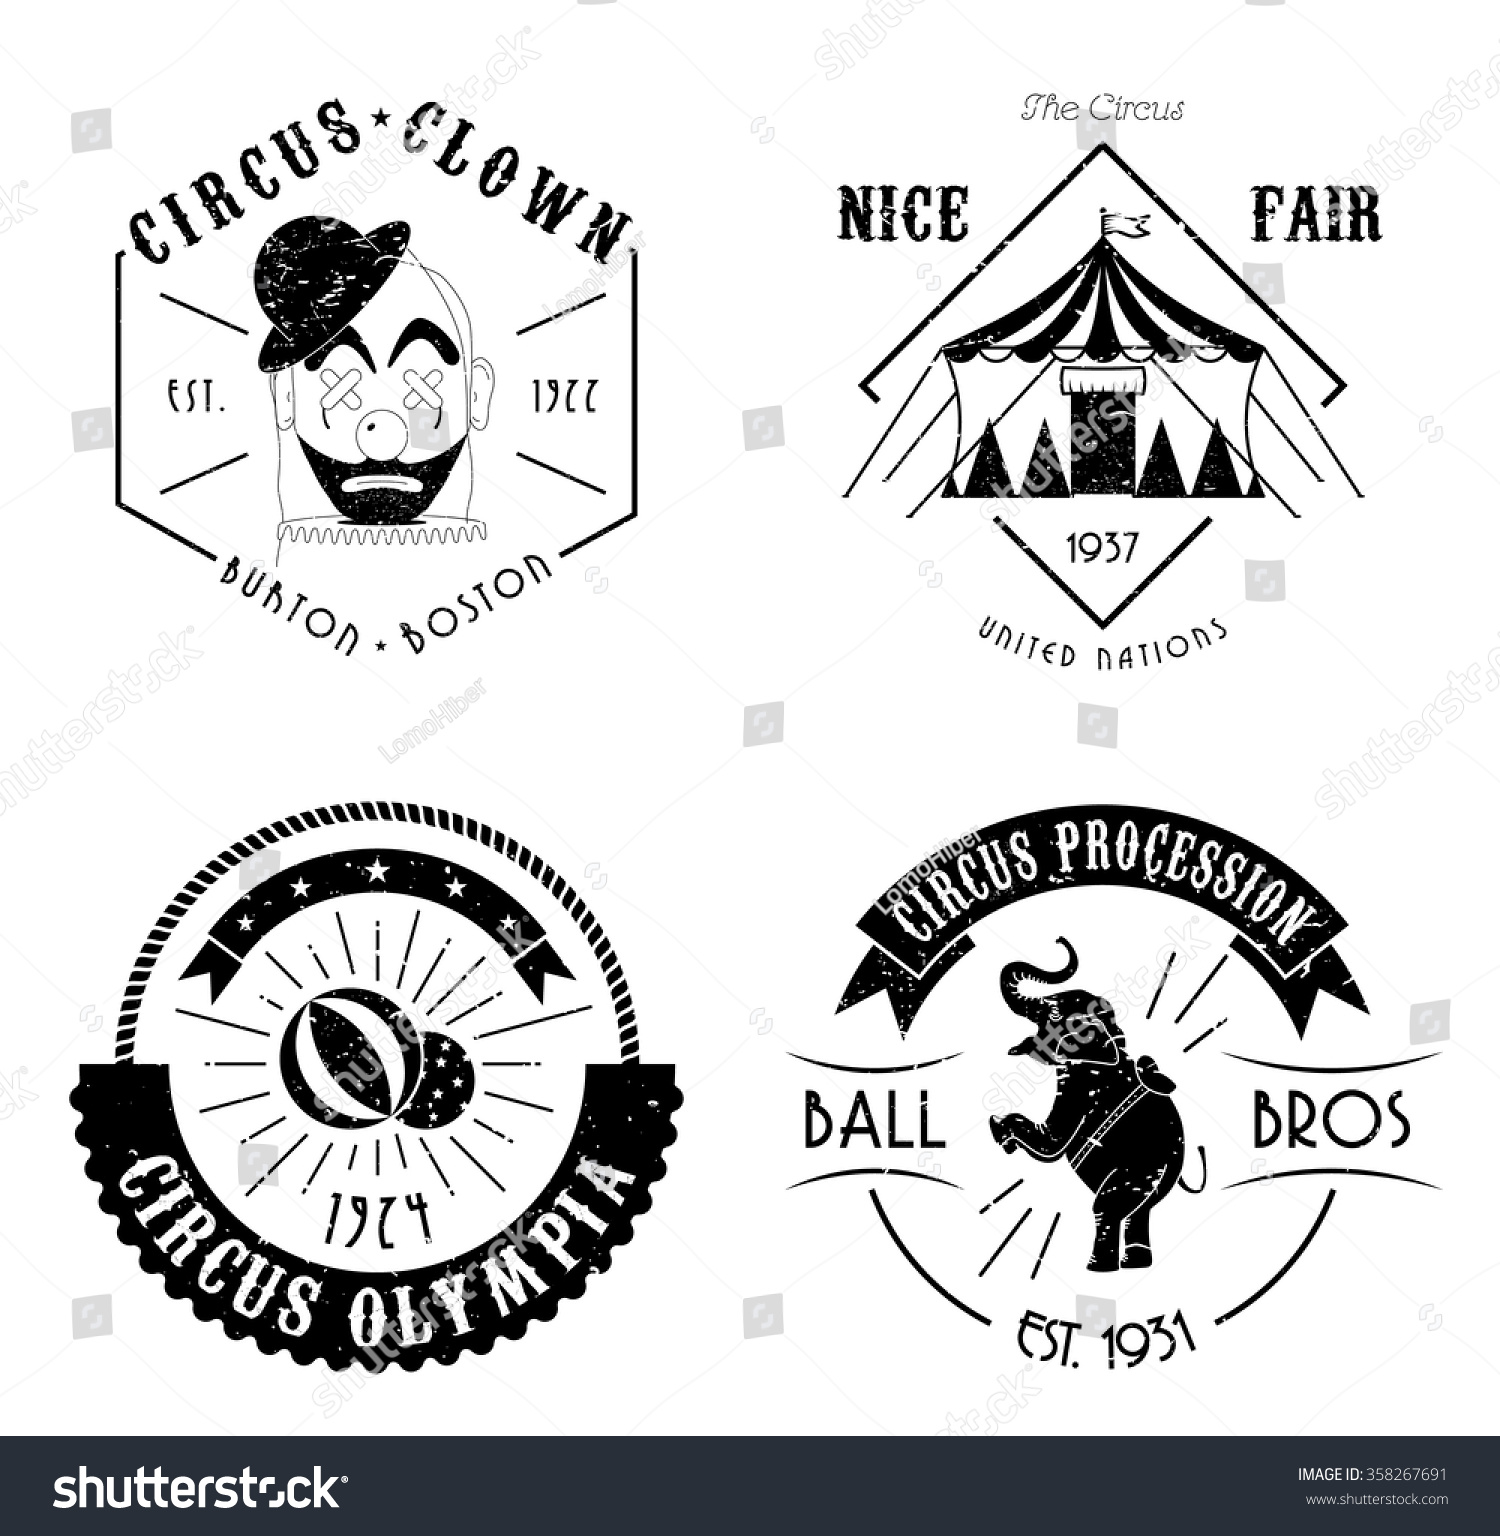 Vintage Circus Clown Retro Circus Clown PNG Image and